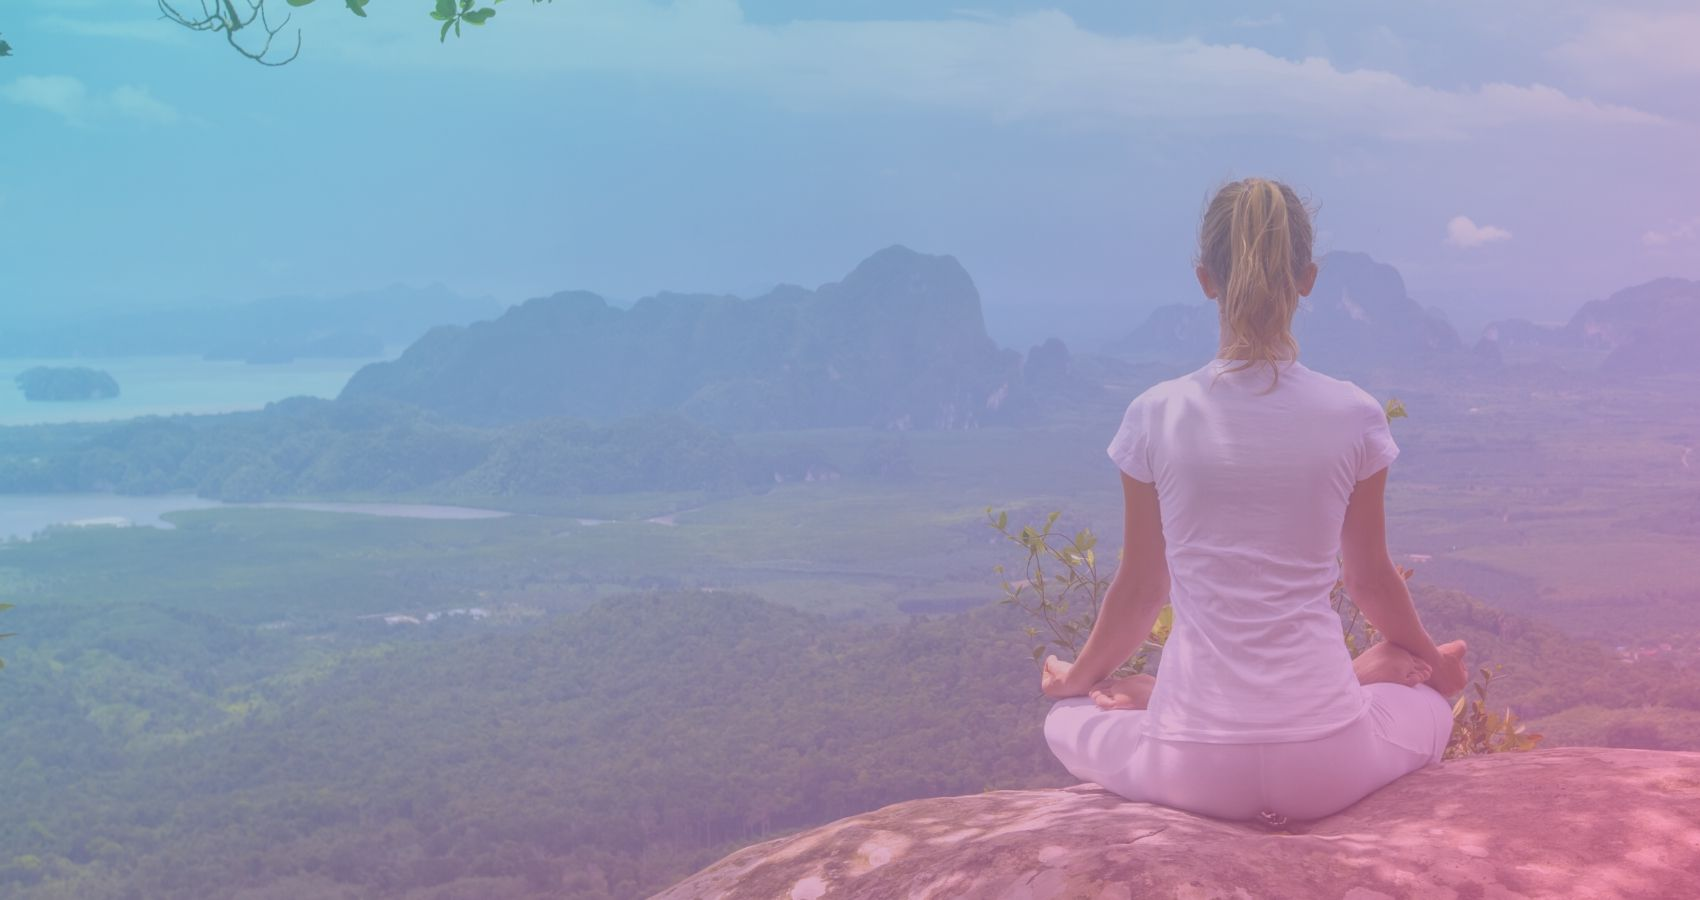 A women engaged in meditation as part of the Journey to Calm Meditation Course for Women